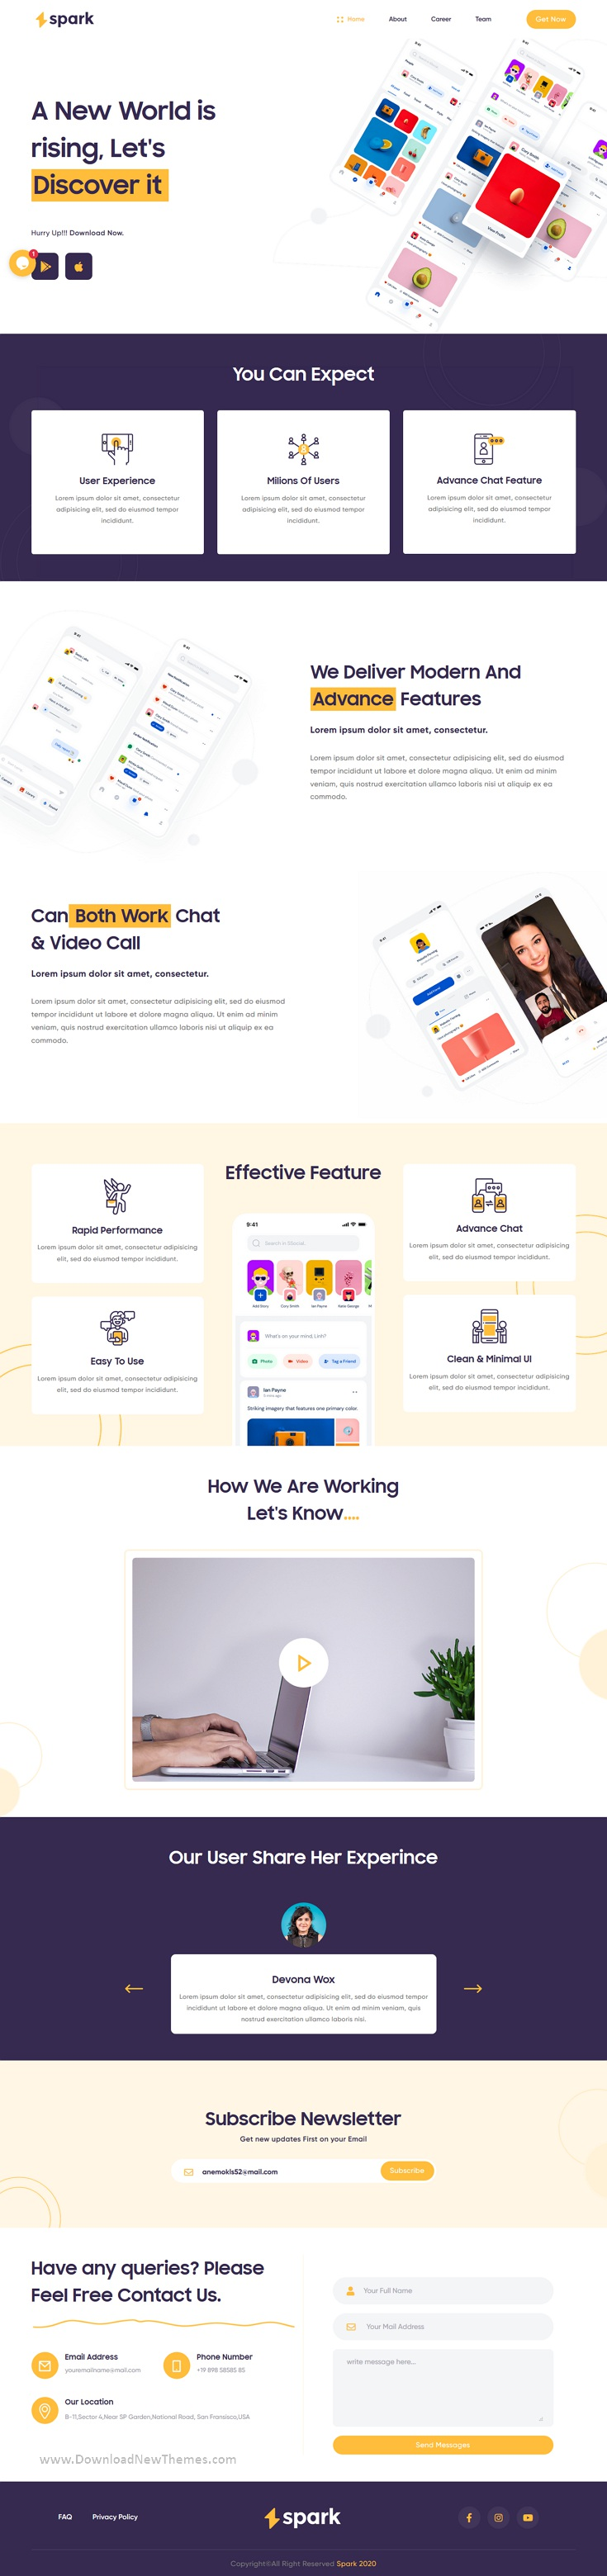 Best Agency And Business Landing Page Template